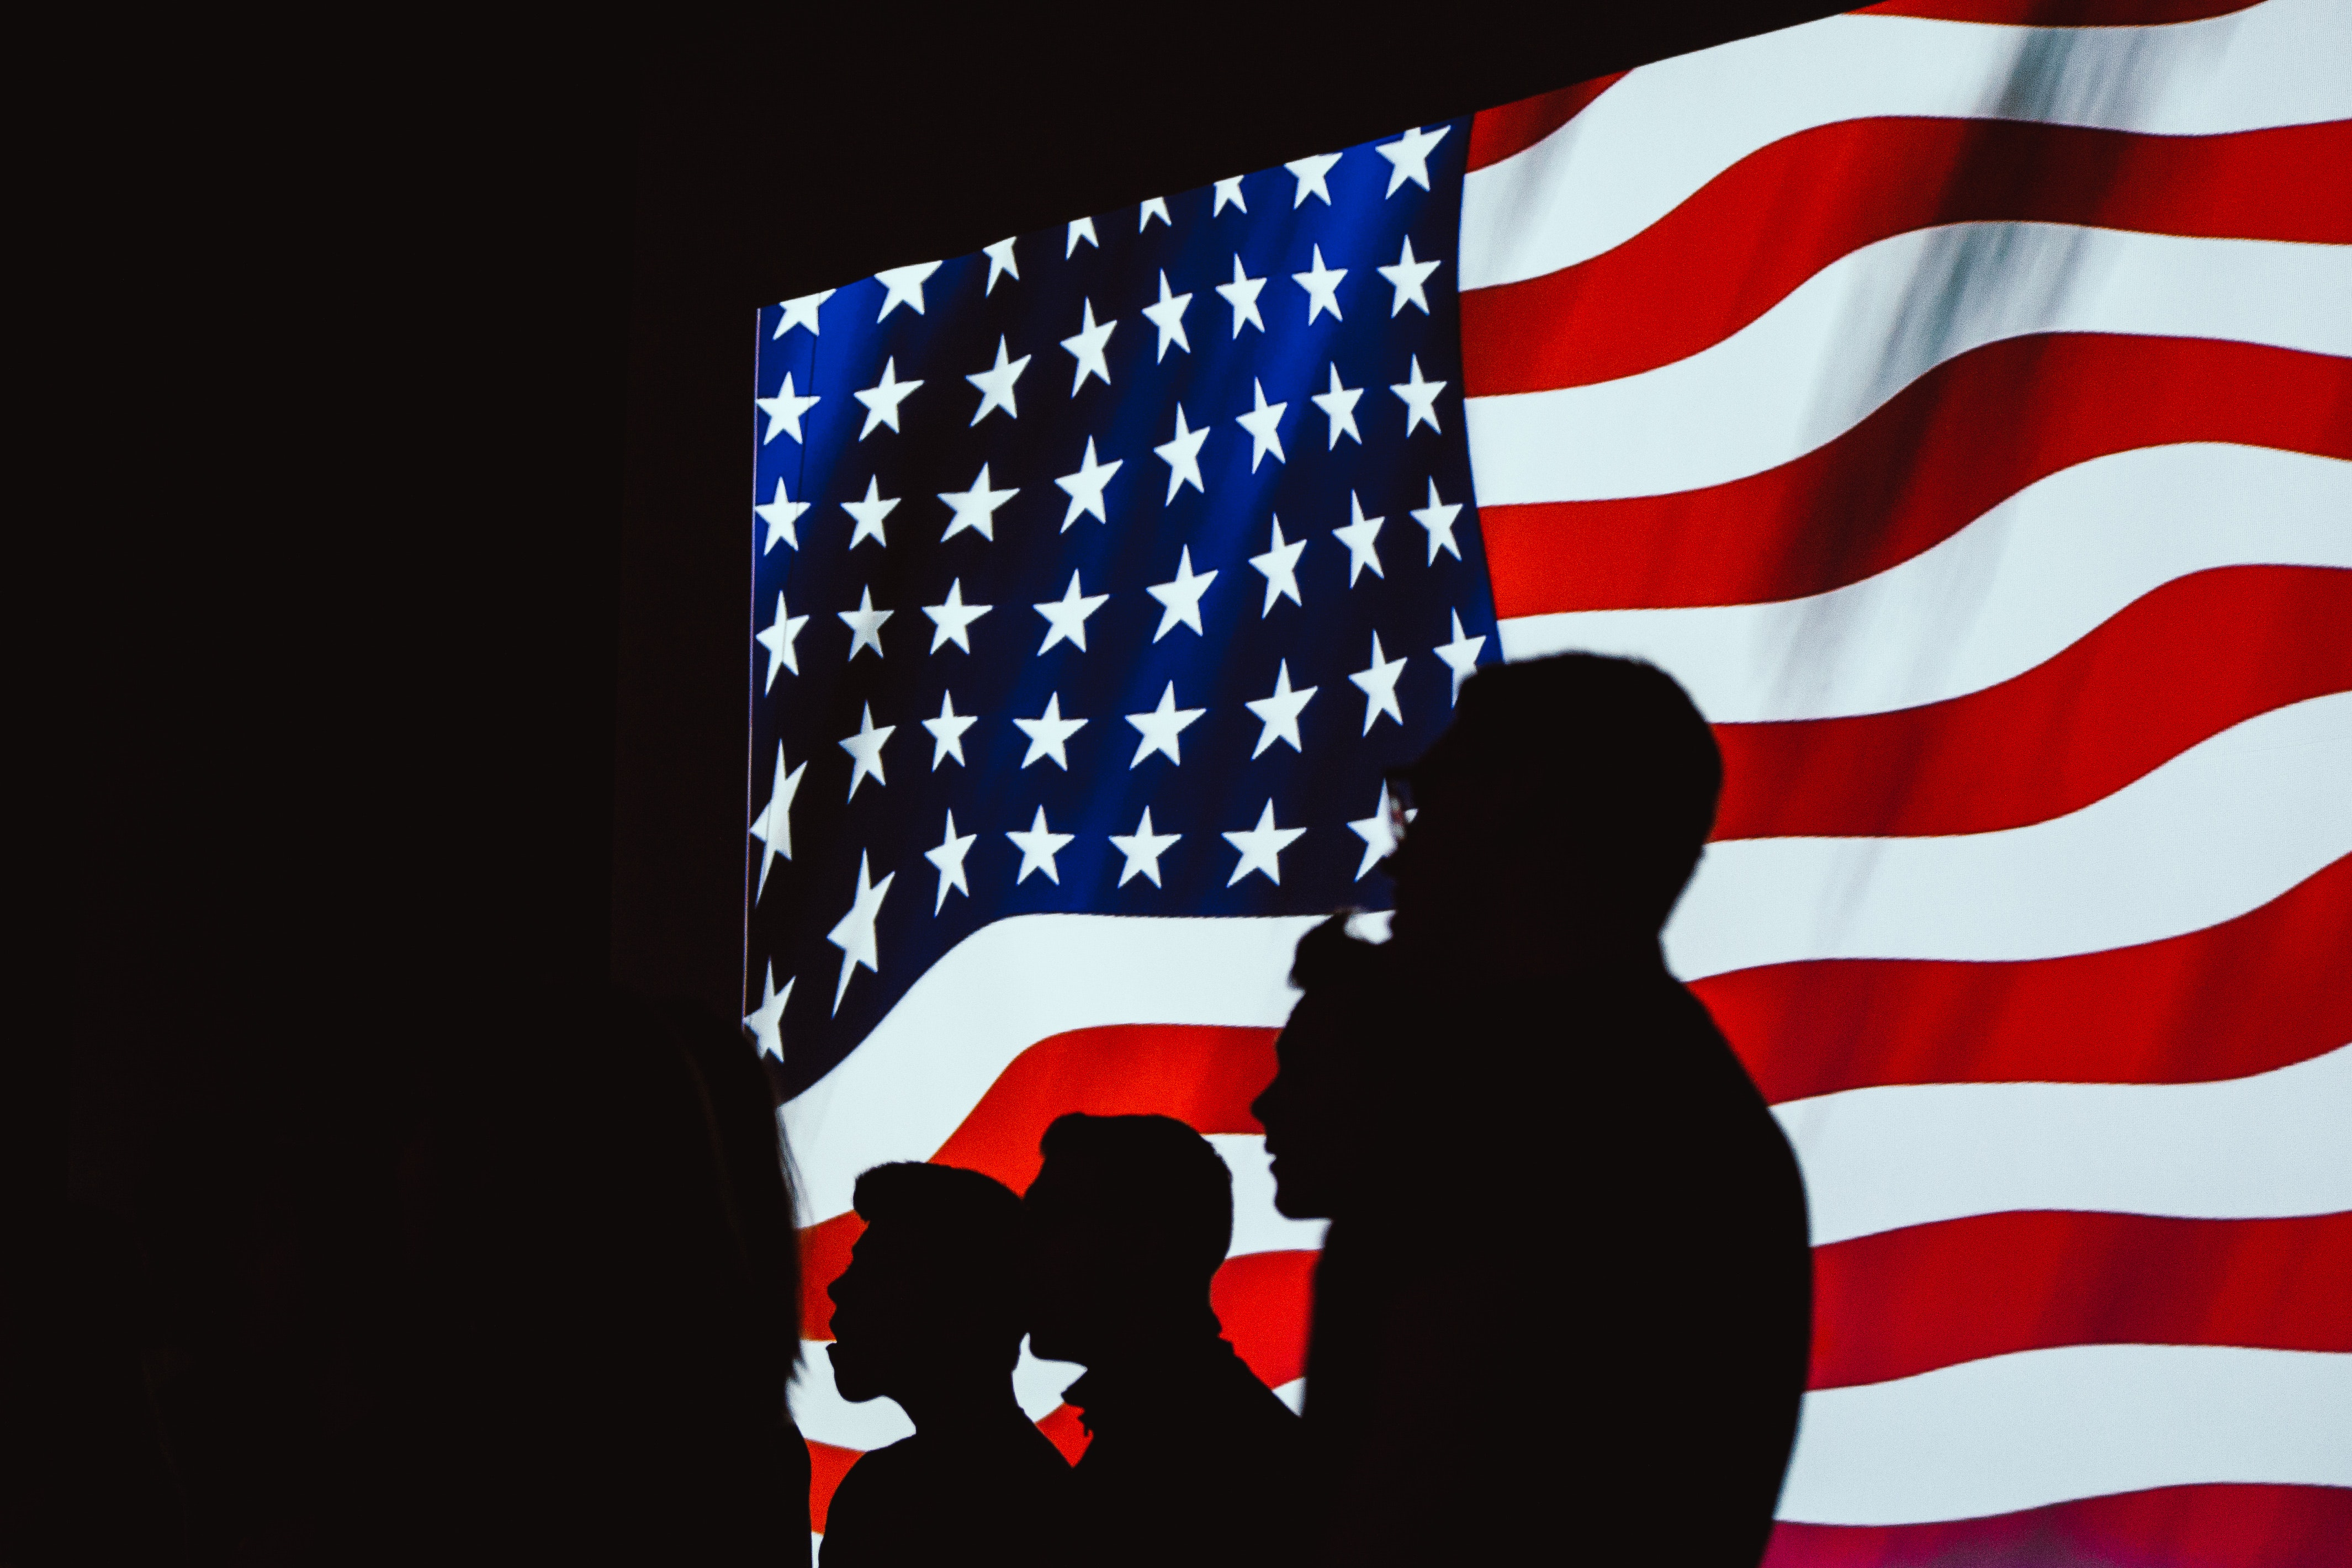 American Flag With Silhouette